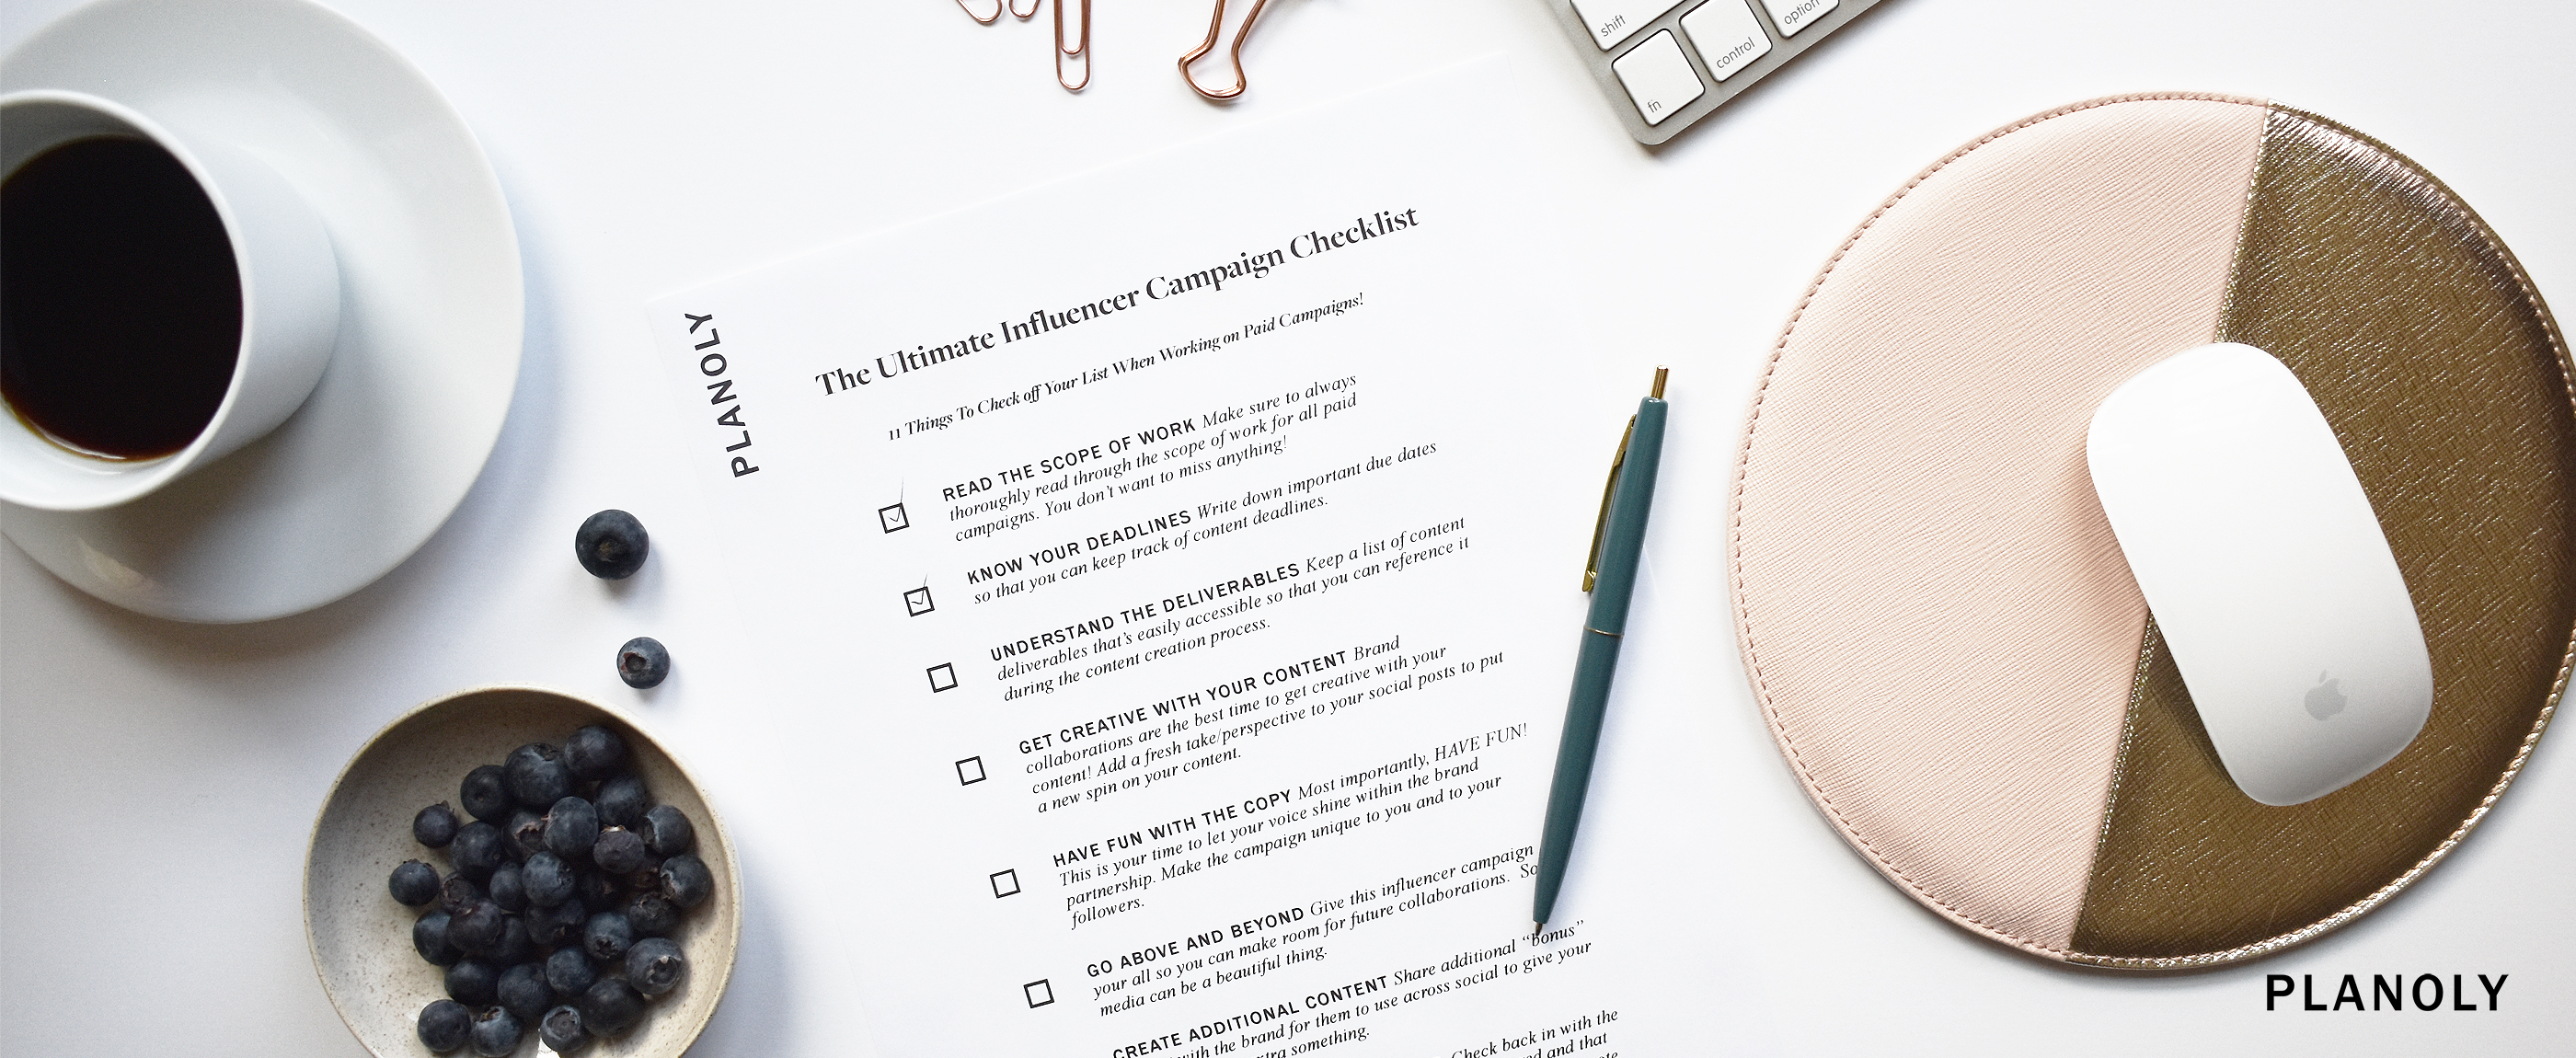 Planoly-Blog-Post-The-Ultimate-Influencer-Campaign-Checklist-Banner-2